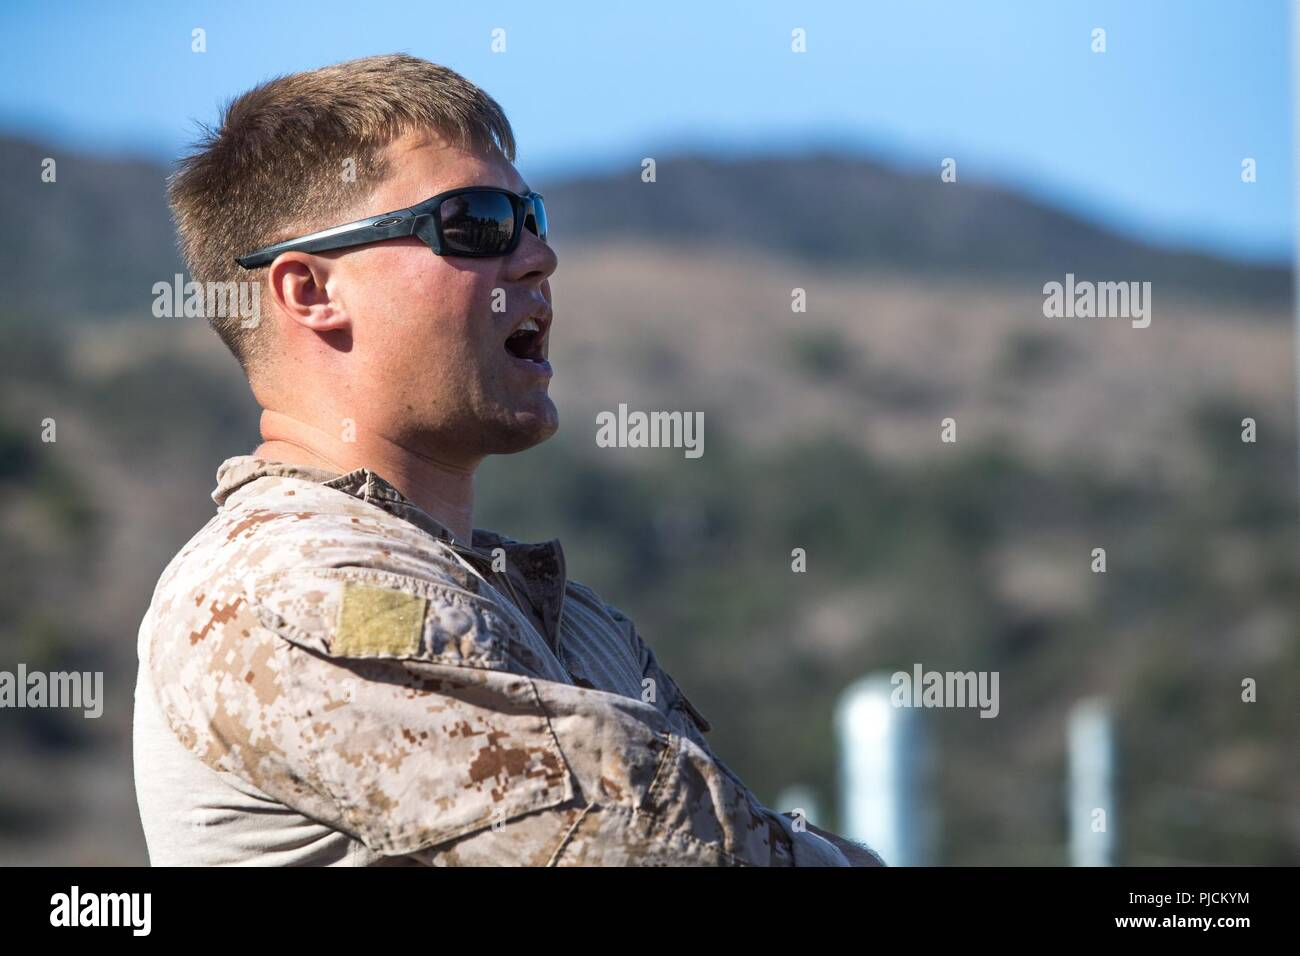 U.S. Marine Corps Staff Sgt. Daniel Ragan, unit leader, Light Armored Reconnaissance Training Company, Advanced Infantry Training Battalion, gives instructions to class 5-18 during a training exercise at Marine Corps Base Camp Pendleton, California, July 24, 2018. Ragan conducted a gear check and taught class 5-18 the importance of using hand signals while guiding Light Armored Vehicles. - Stock Image